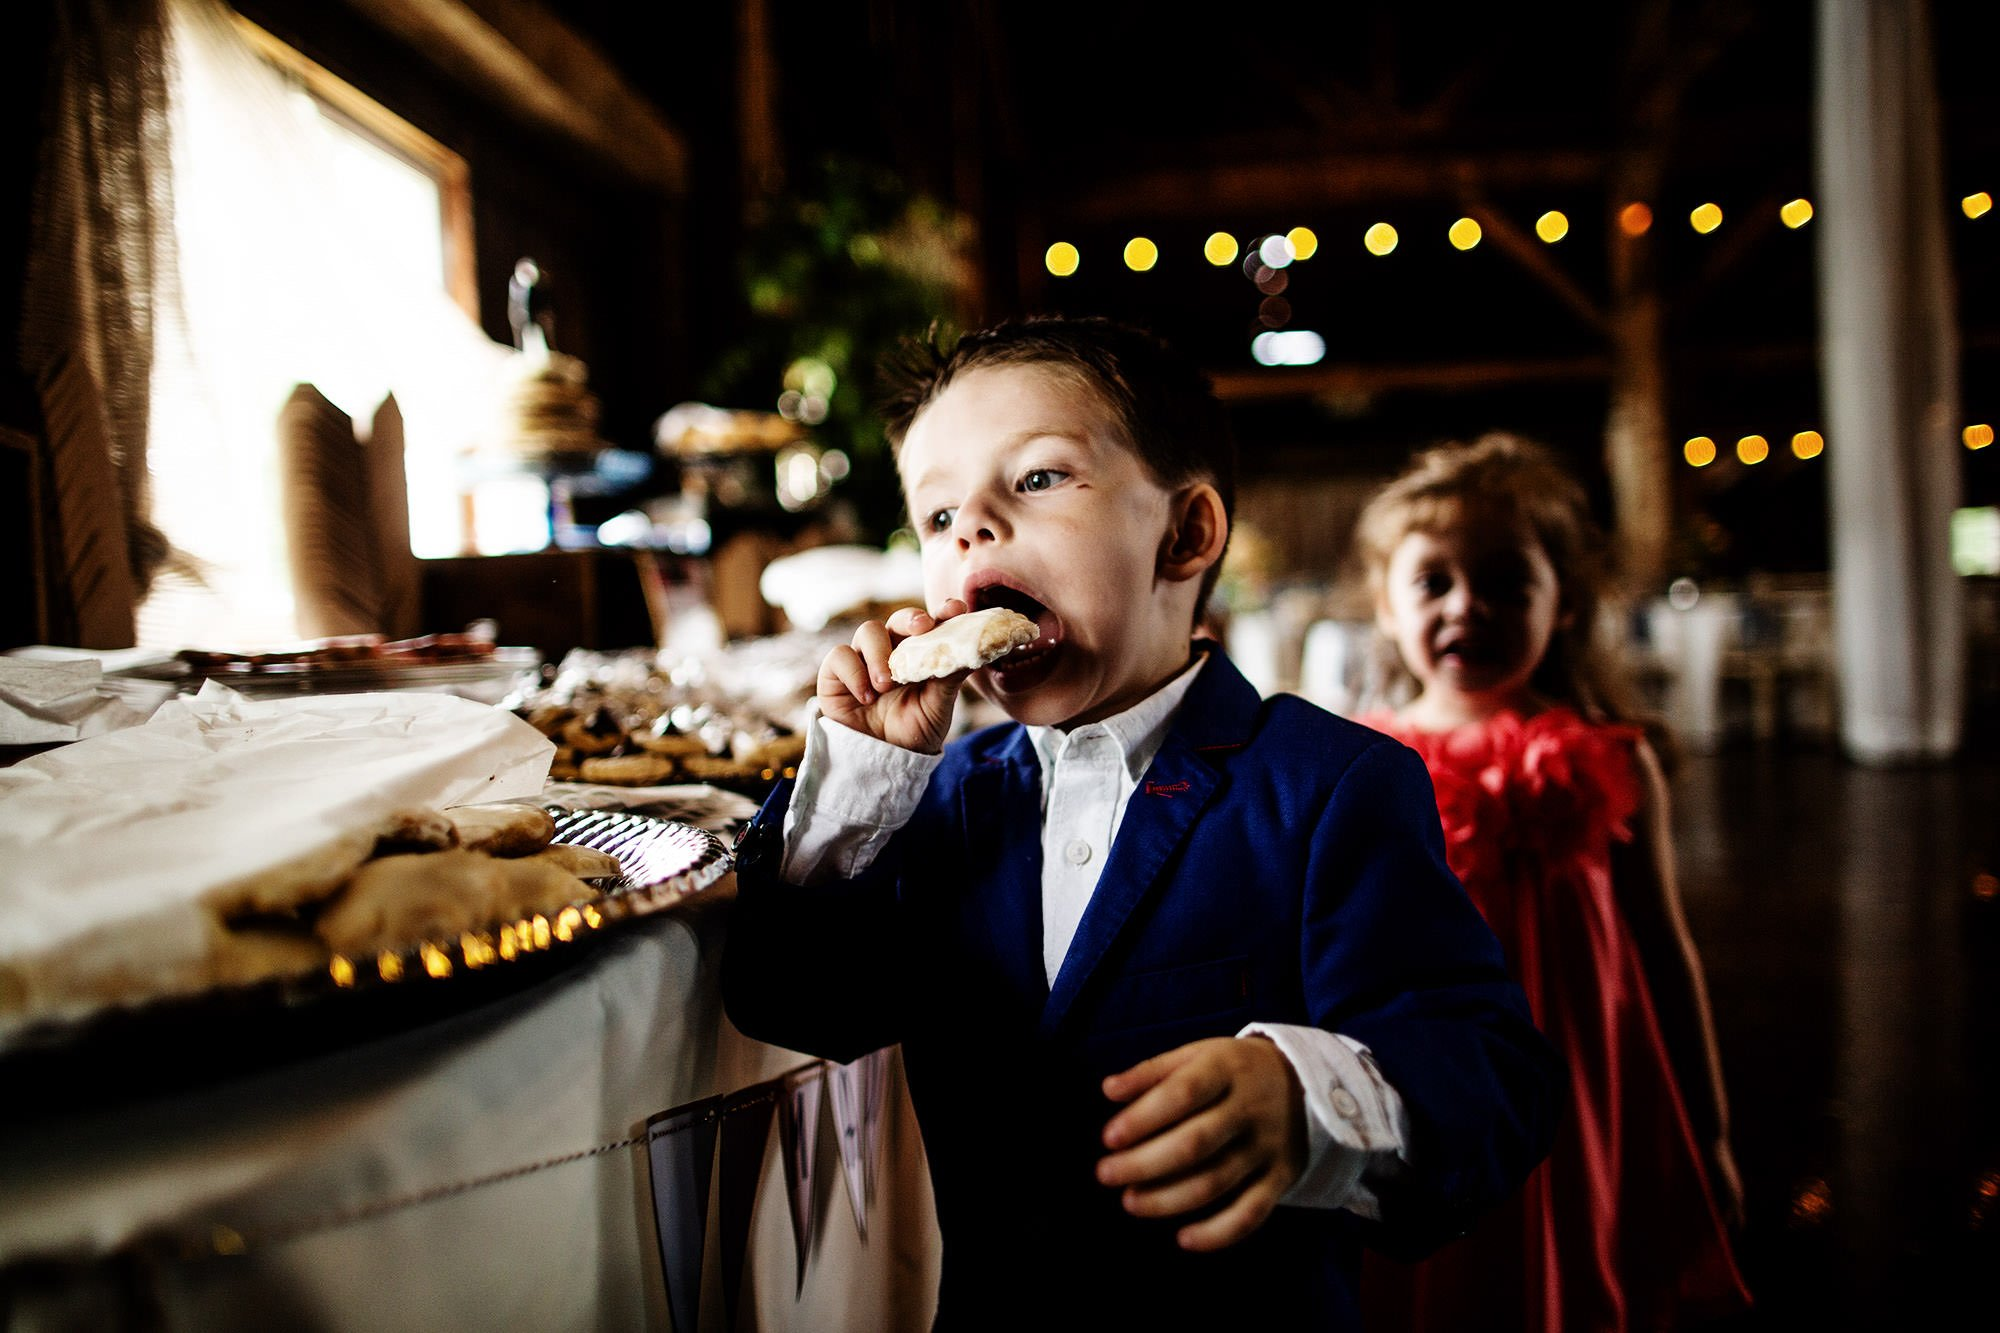 Kids eat cookies during cocktail hour at Bishop Farm.